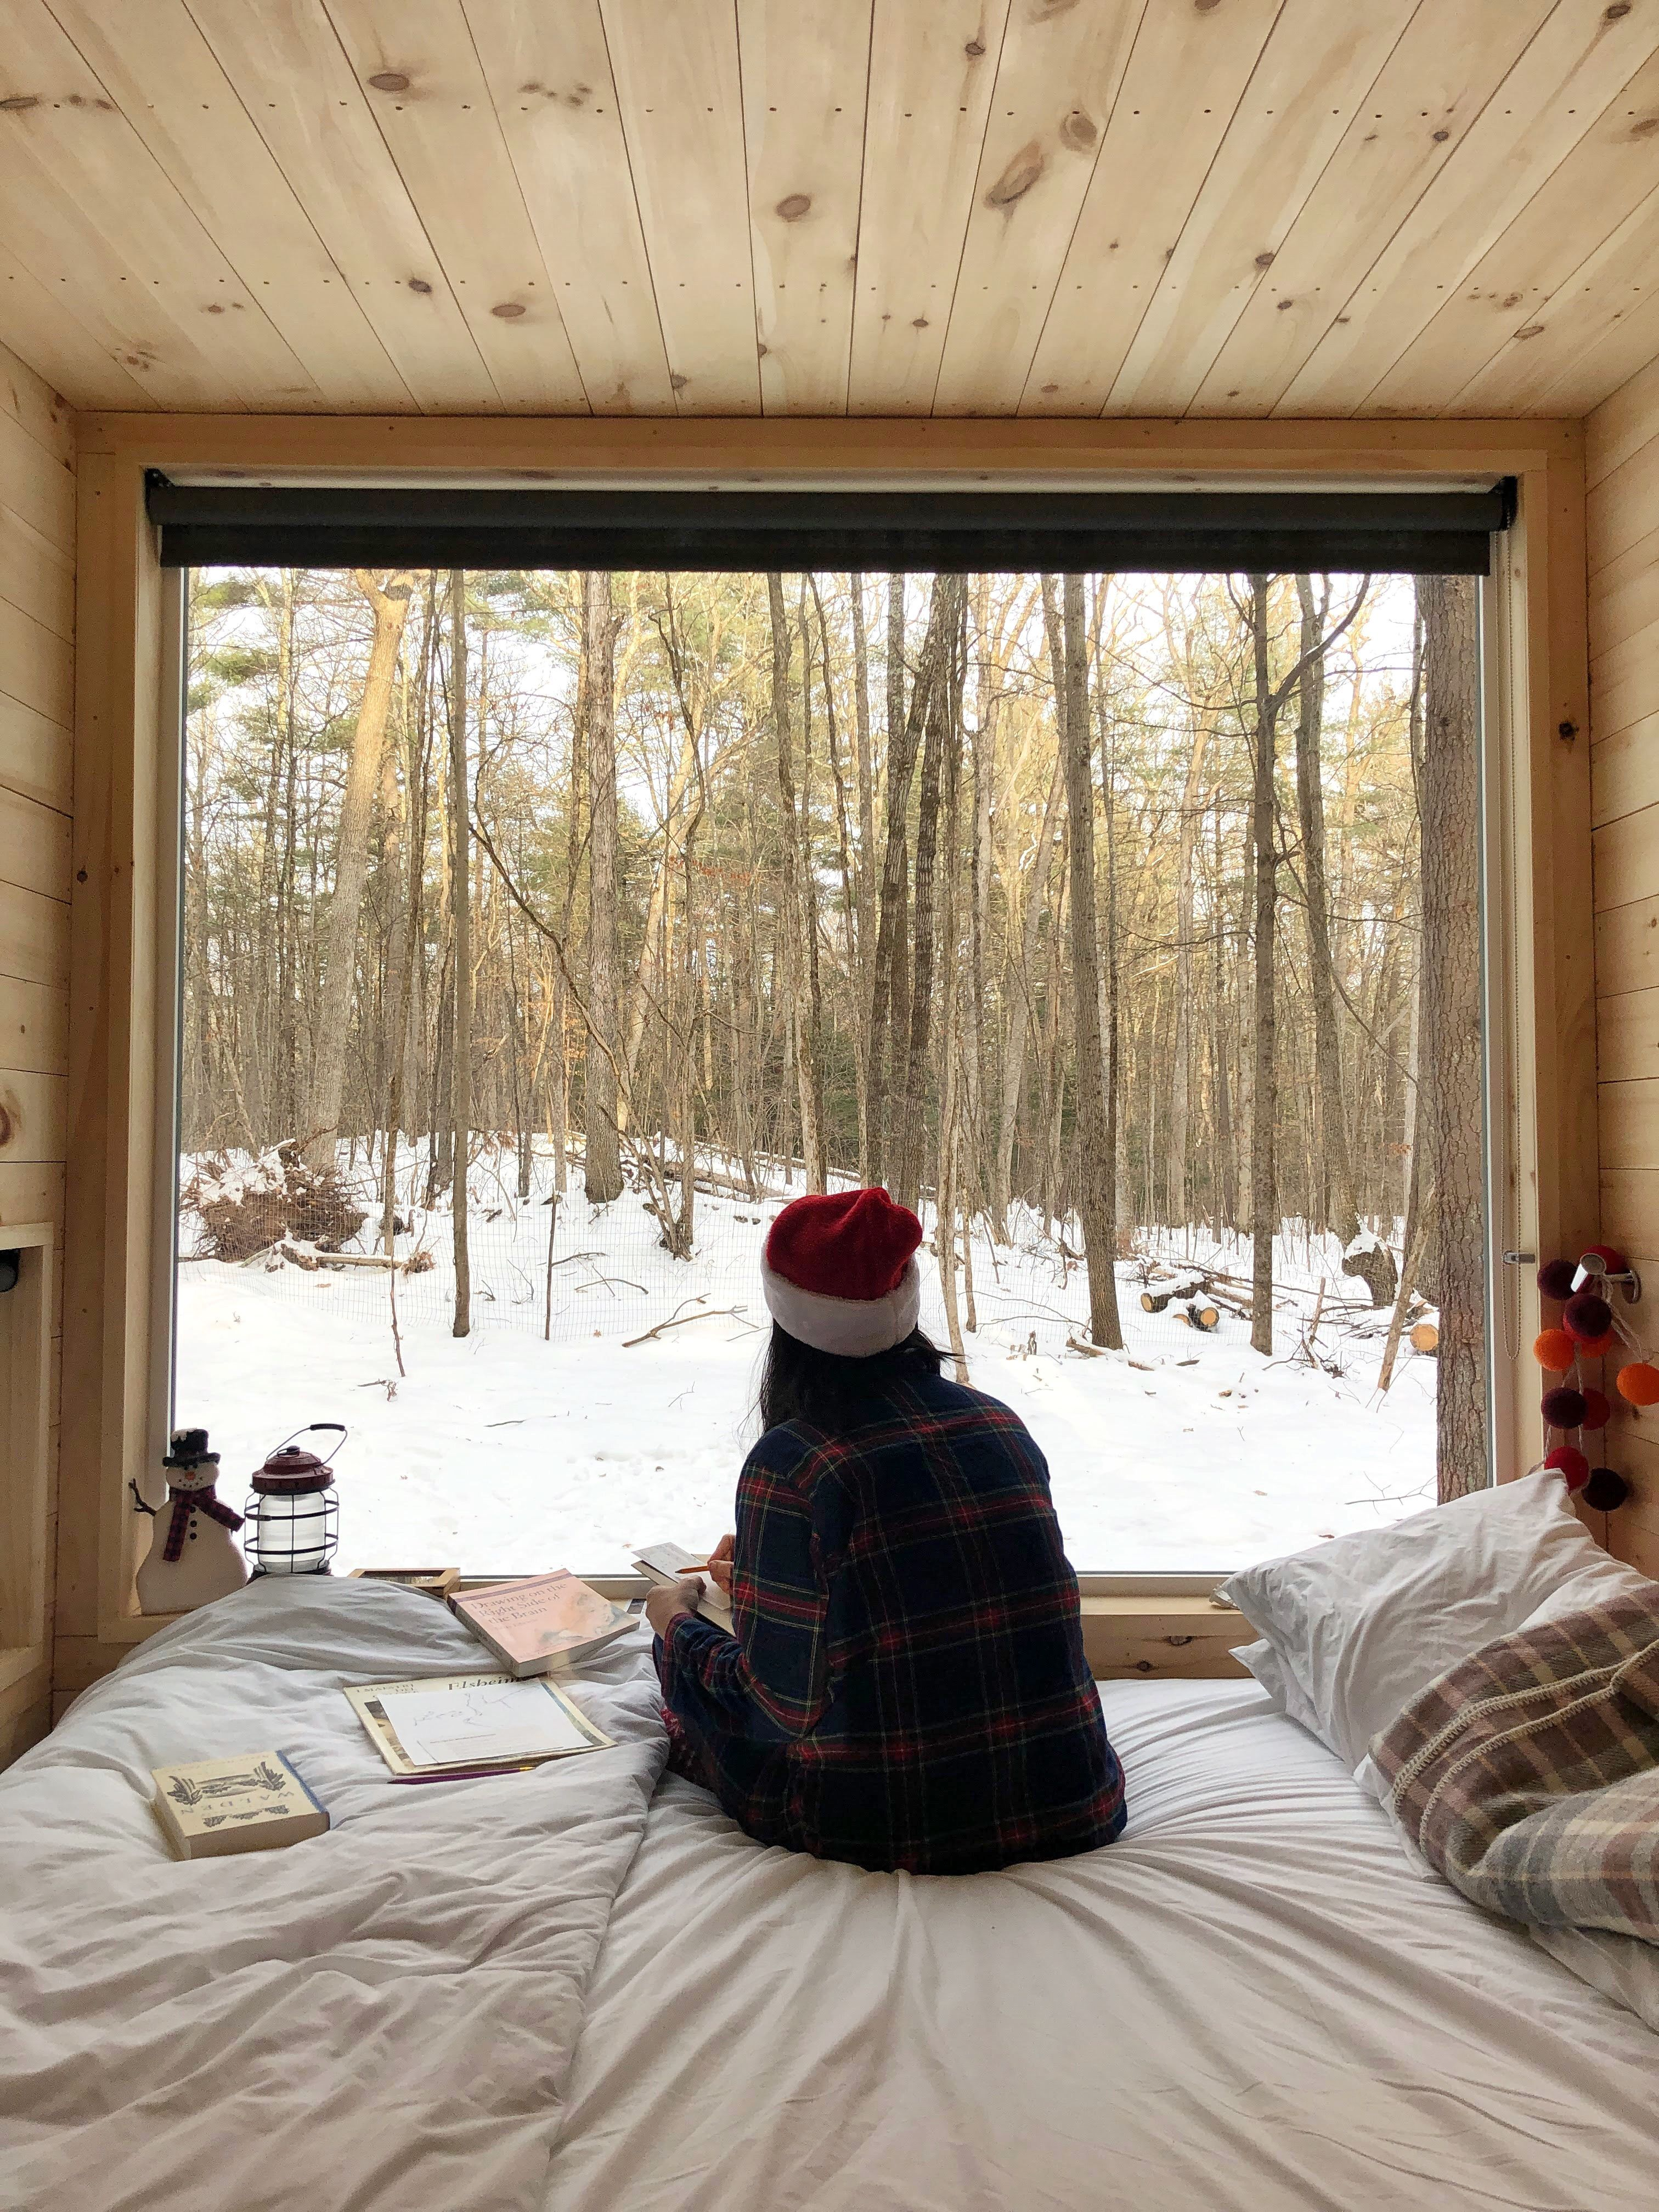 Weekend Getaway From Nyc Cabin In Catskill Ny For More Go To Instagram Twotravelisseurs